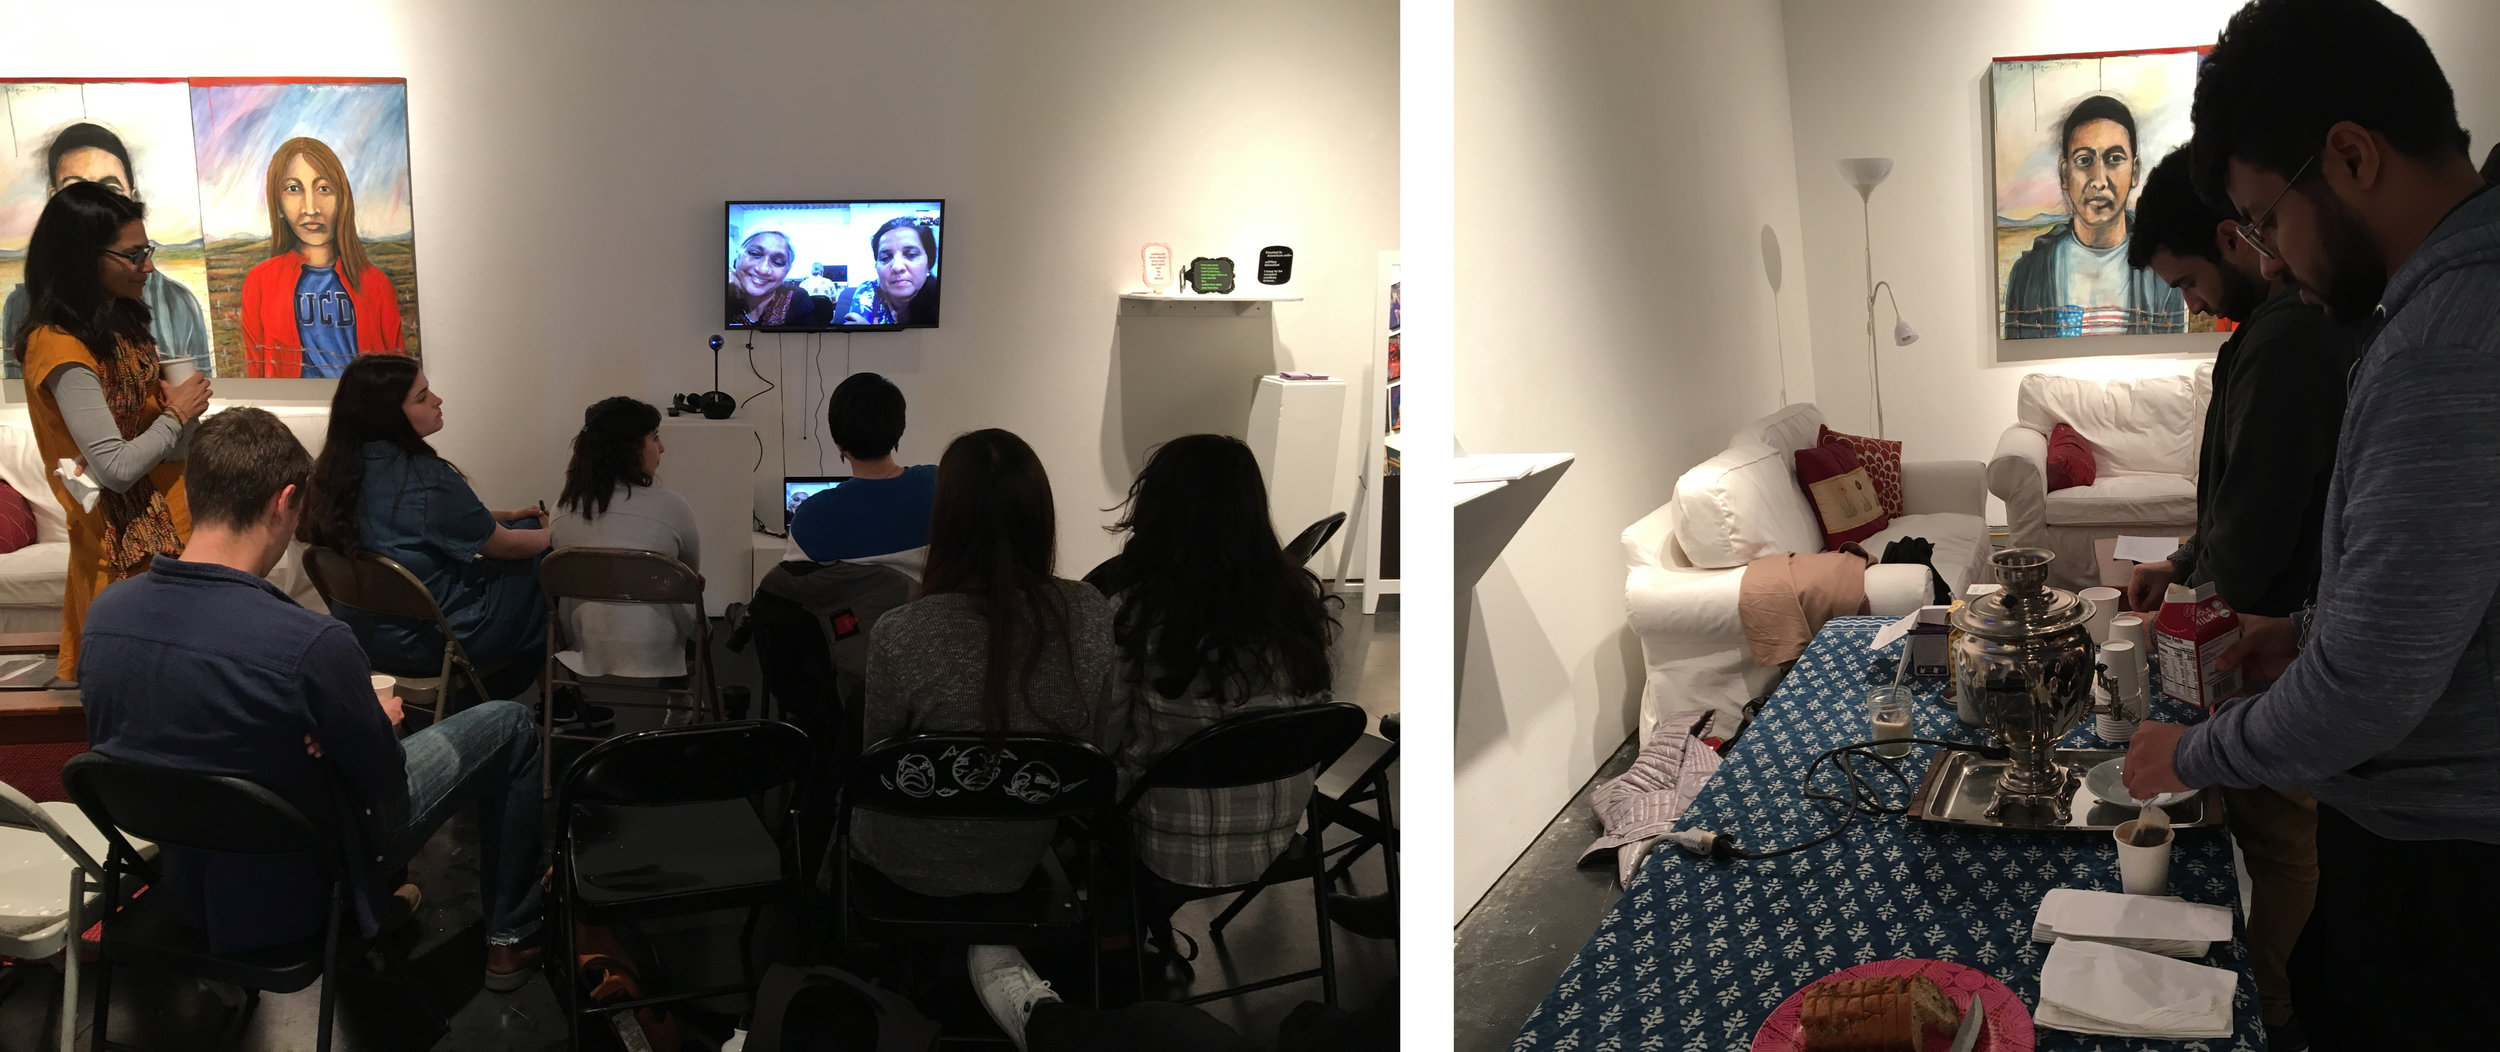 Home: Making Space for Radical Love,  Oliver Gallery, California College of the Arts, 2017  In April 2018, at California College of the Arts, we hosted a conversation and tea as part of the Diversity Studies faculty exhibition and programming,  Home: Making Space for Radical Love , to engage students, faculty and the general public in a collective conversation on the theme of home - something that has lived at the heart of our work since we began our collective.